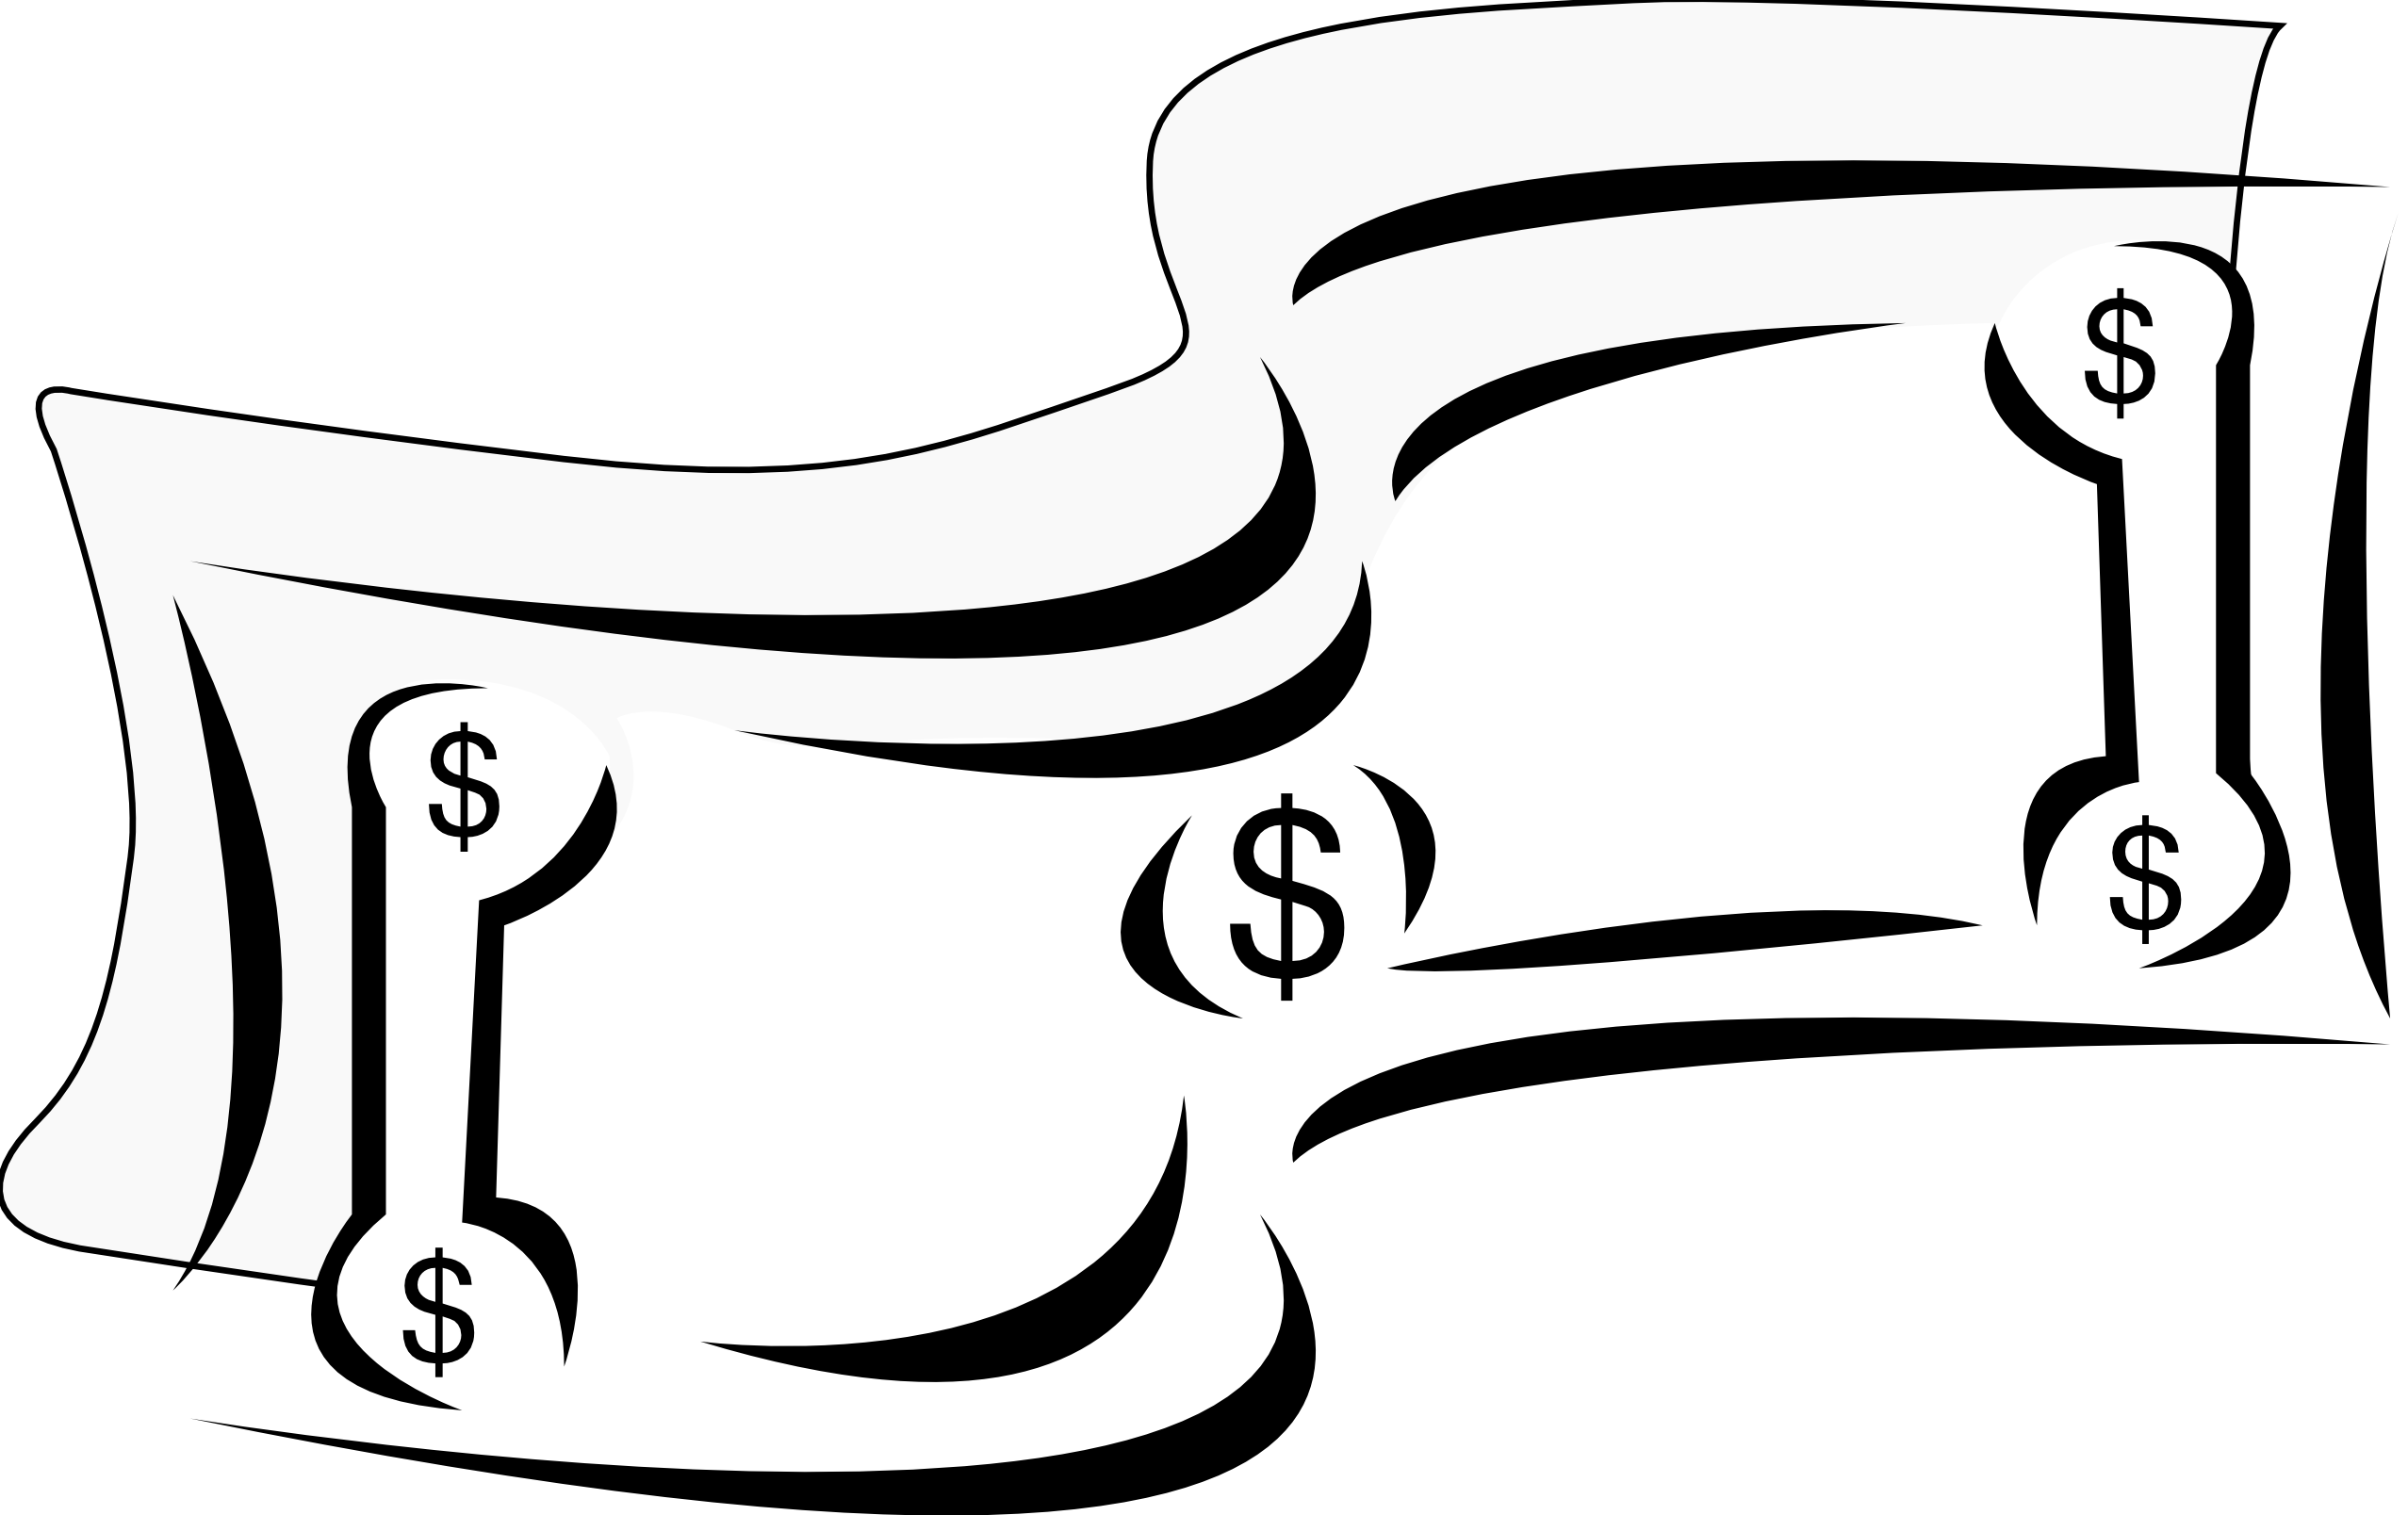 Birthday money clipart black and white clipart black and white stock 28+ Collection of Dollar Bill Clipart Black And White | High quality ... clipart black and white stock